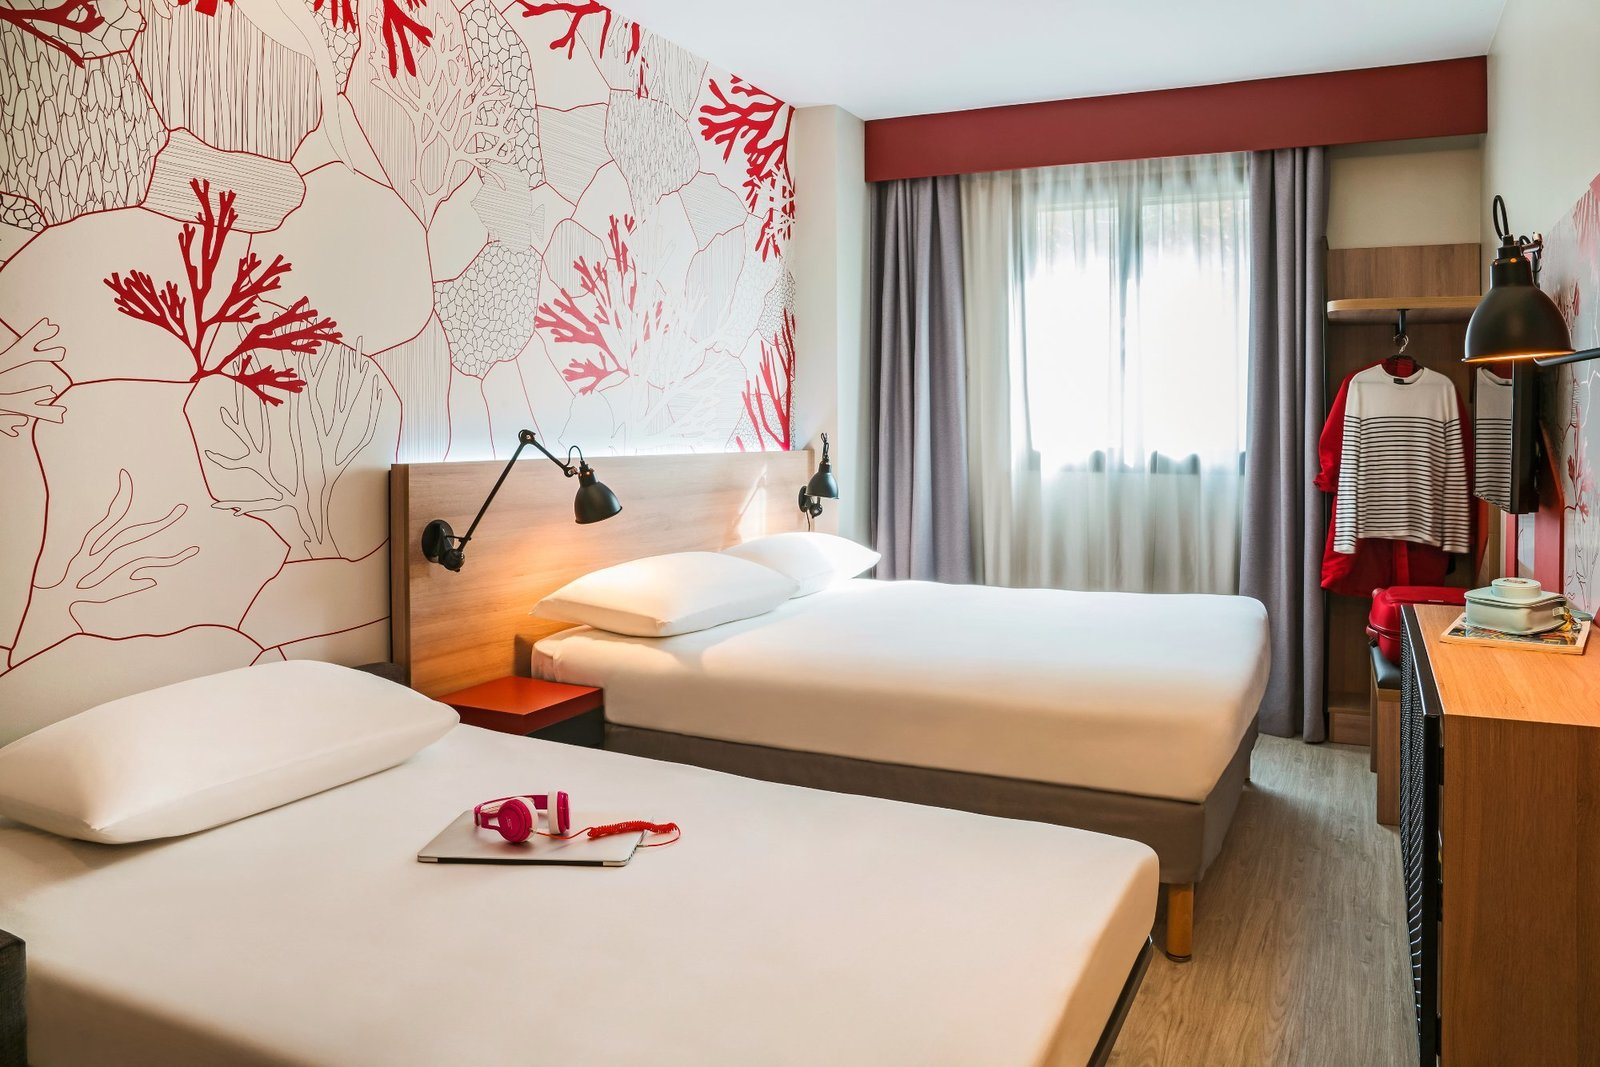 The ibis Styles Barcelona City hotel is designed so that you can enjoy an outstanding experience in the heart of Barcelona. Find yourself in an environment inspired by the Mediterranean.  Photo 9 of 16 in 16 Places to Stay in Barcelona for Less Than $100 a Night